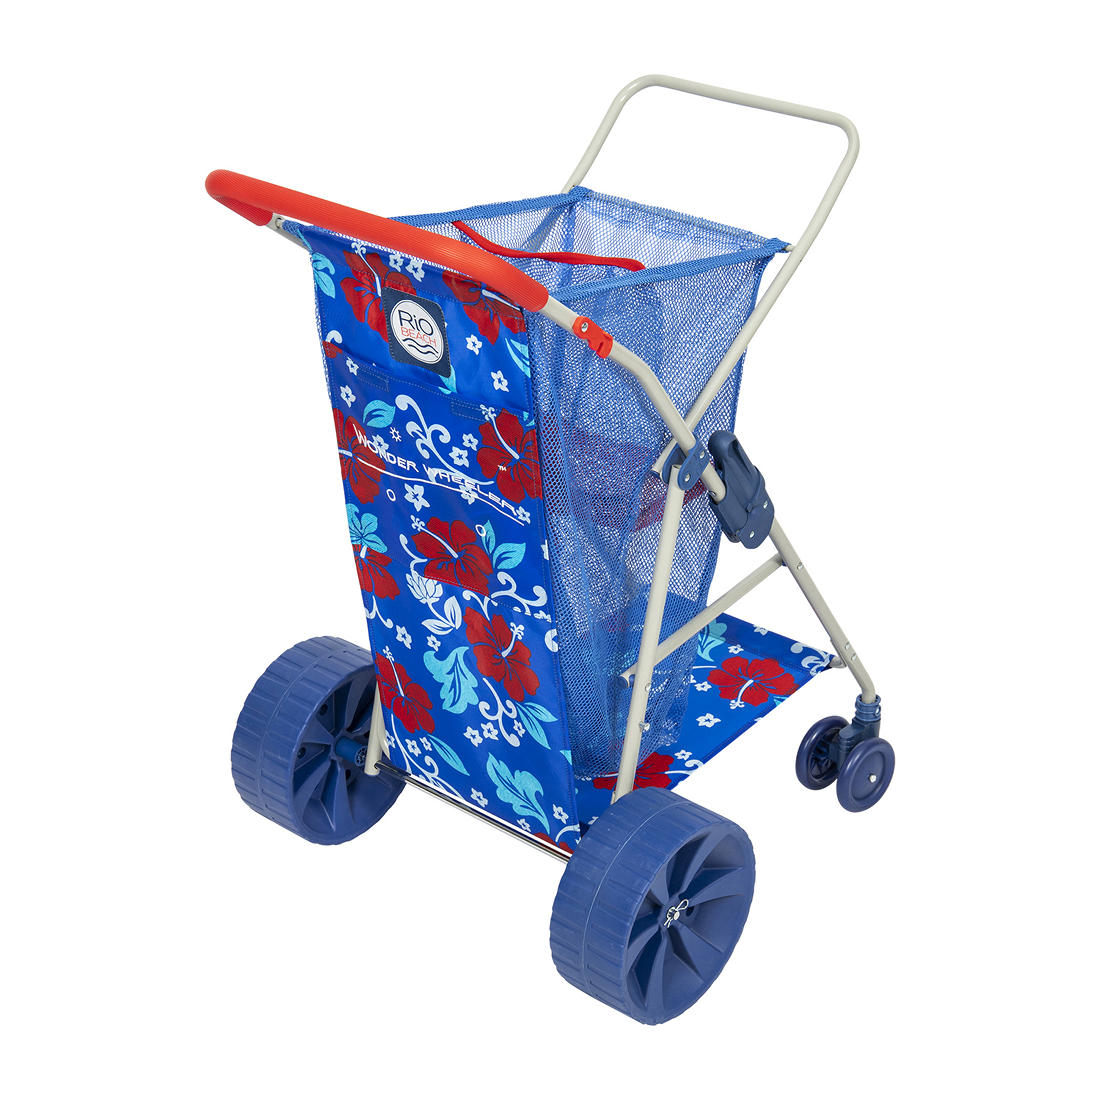 796d77de16da Rio Wonder Wheeler Deluxe Folding Beach Cart